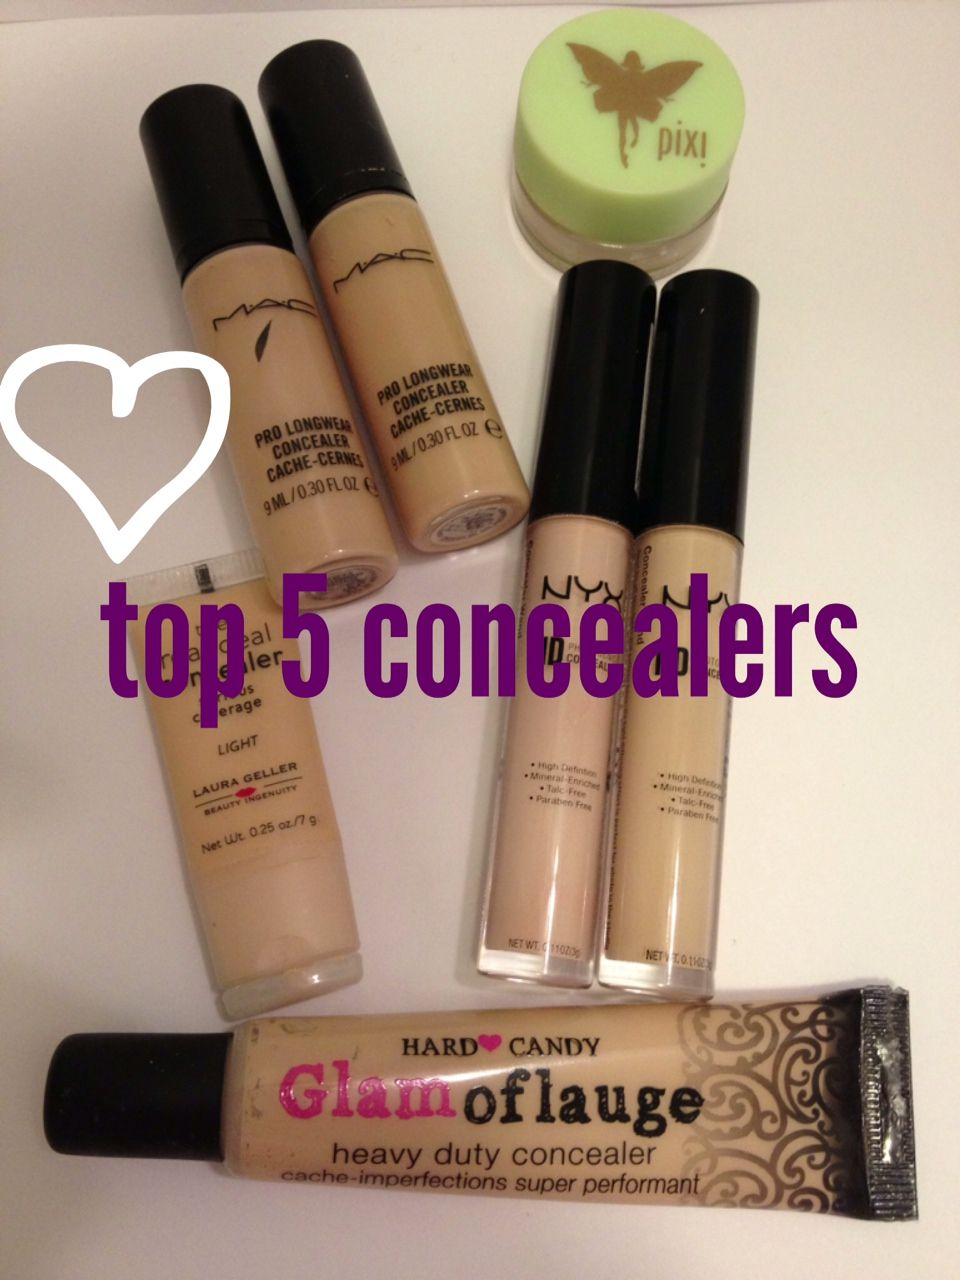 Top 5 concealers including MAC, NYX, Laura Geller, Pixi and Hard ...